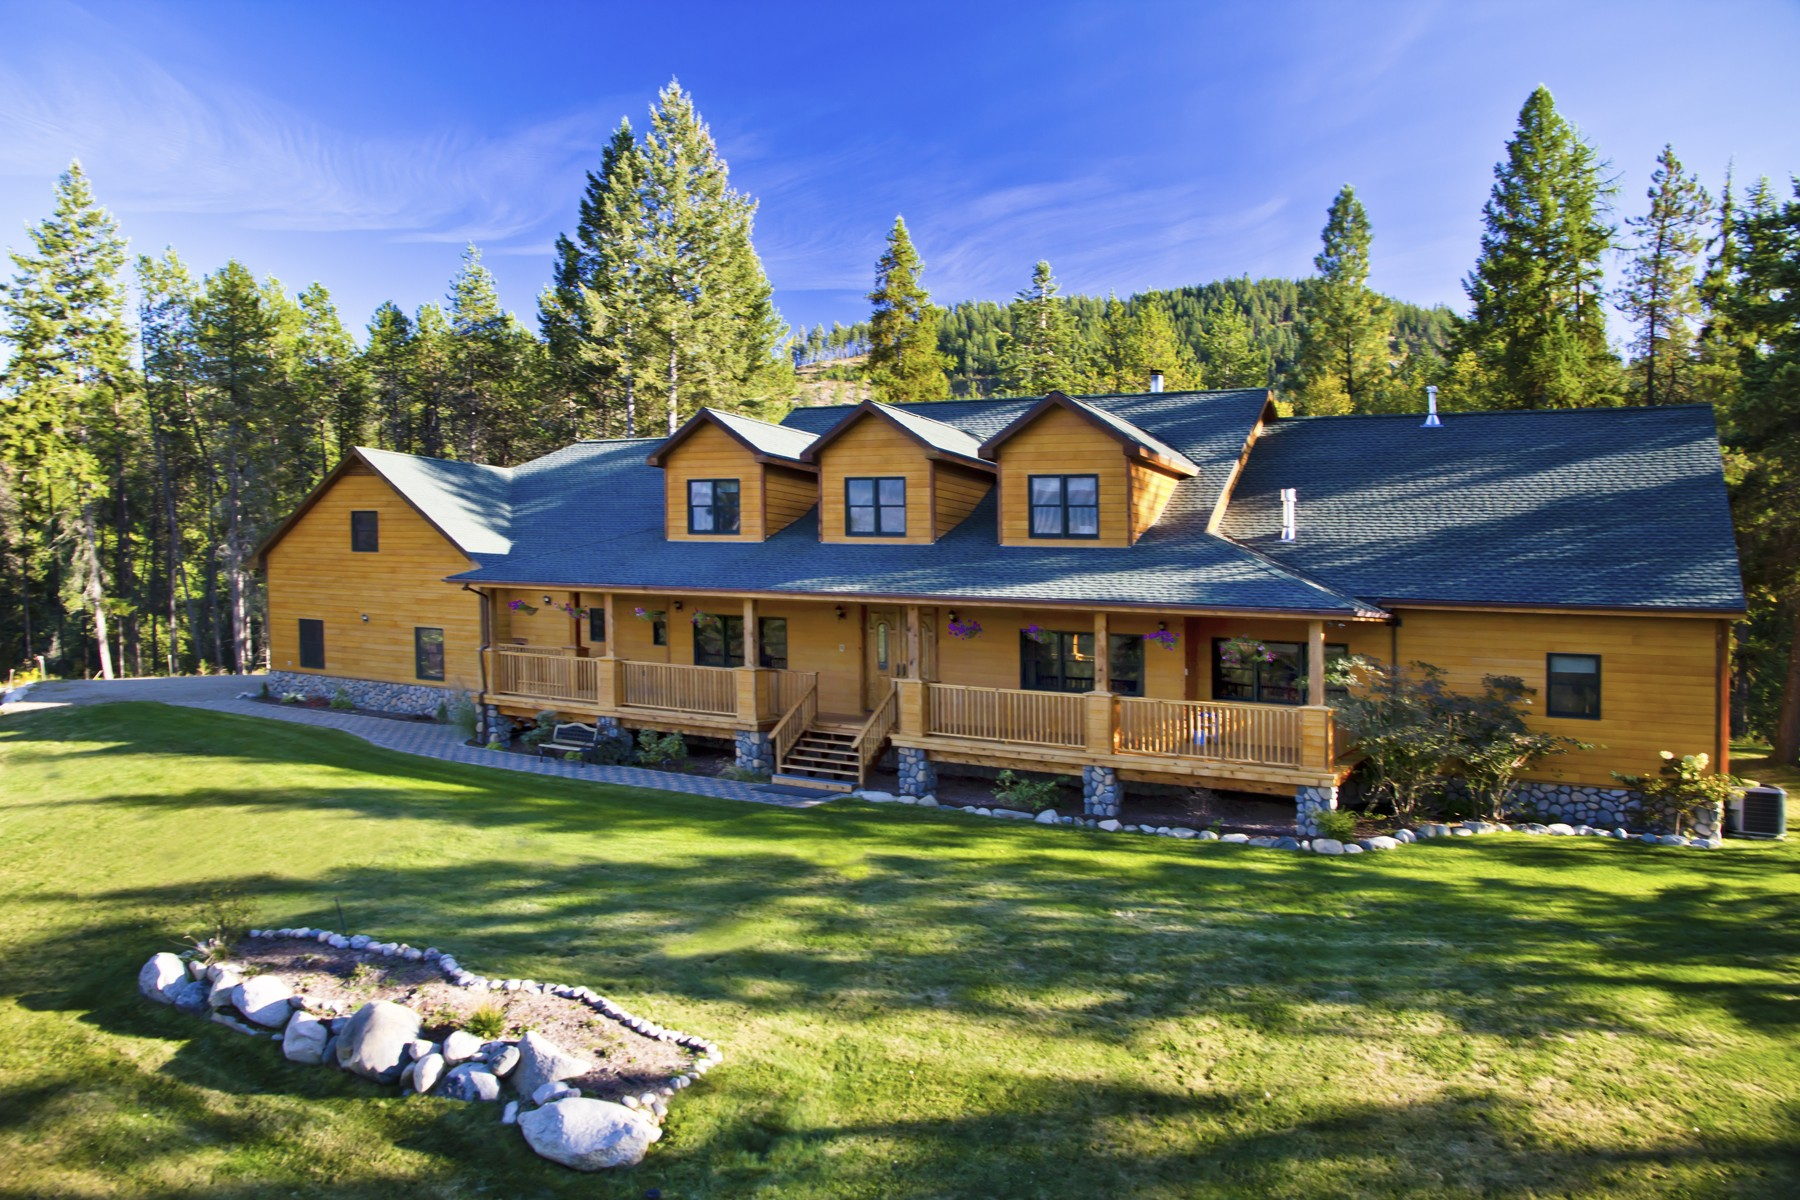 Single Family Home for Sale at Estate at Peak View 68 PEAK VIEW DR Sandpoint, Idaho, 83860 United States